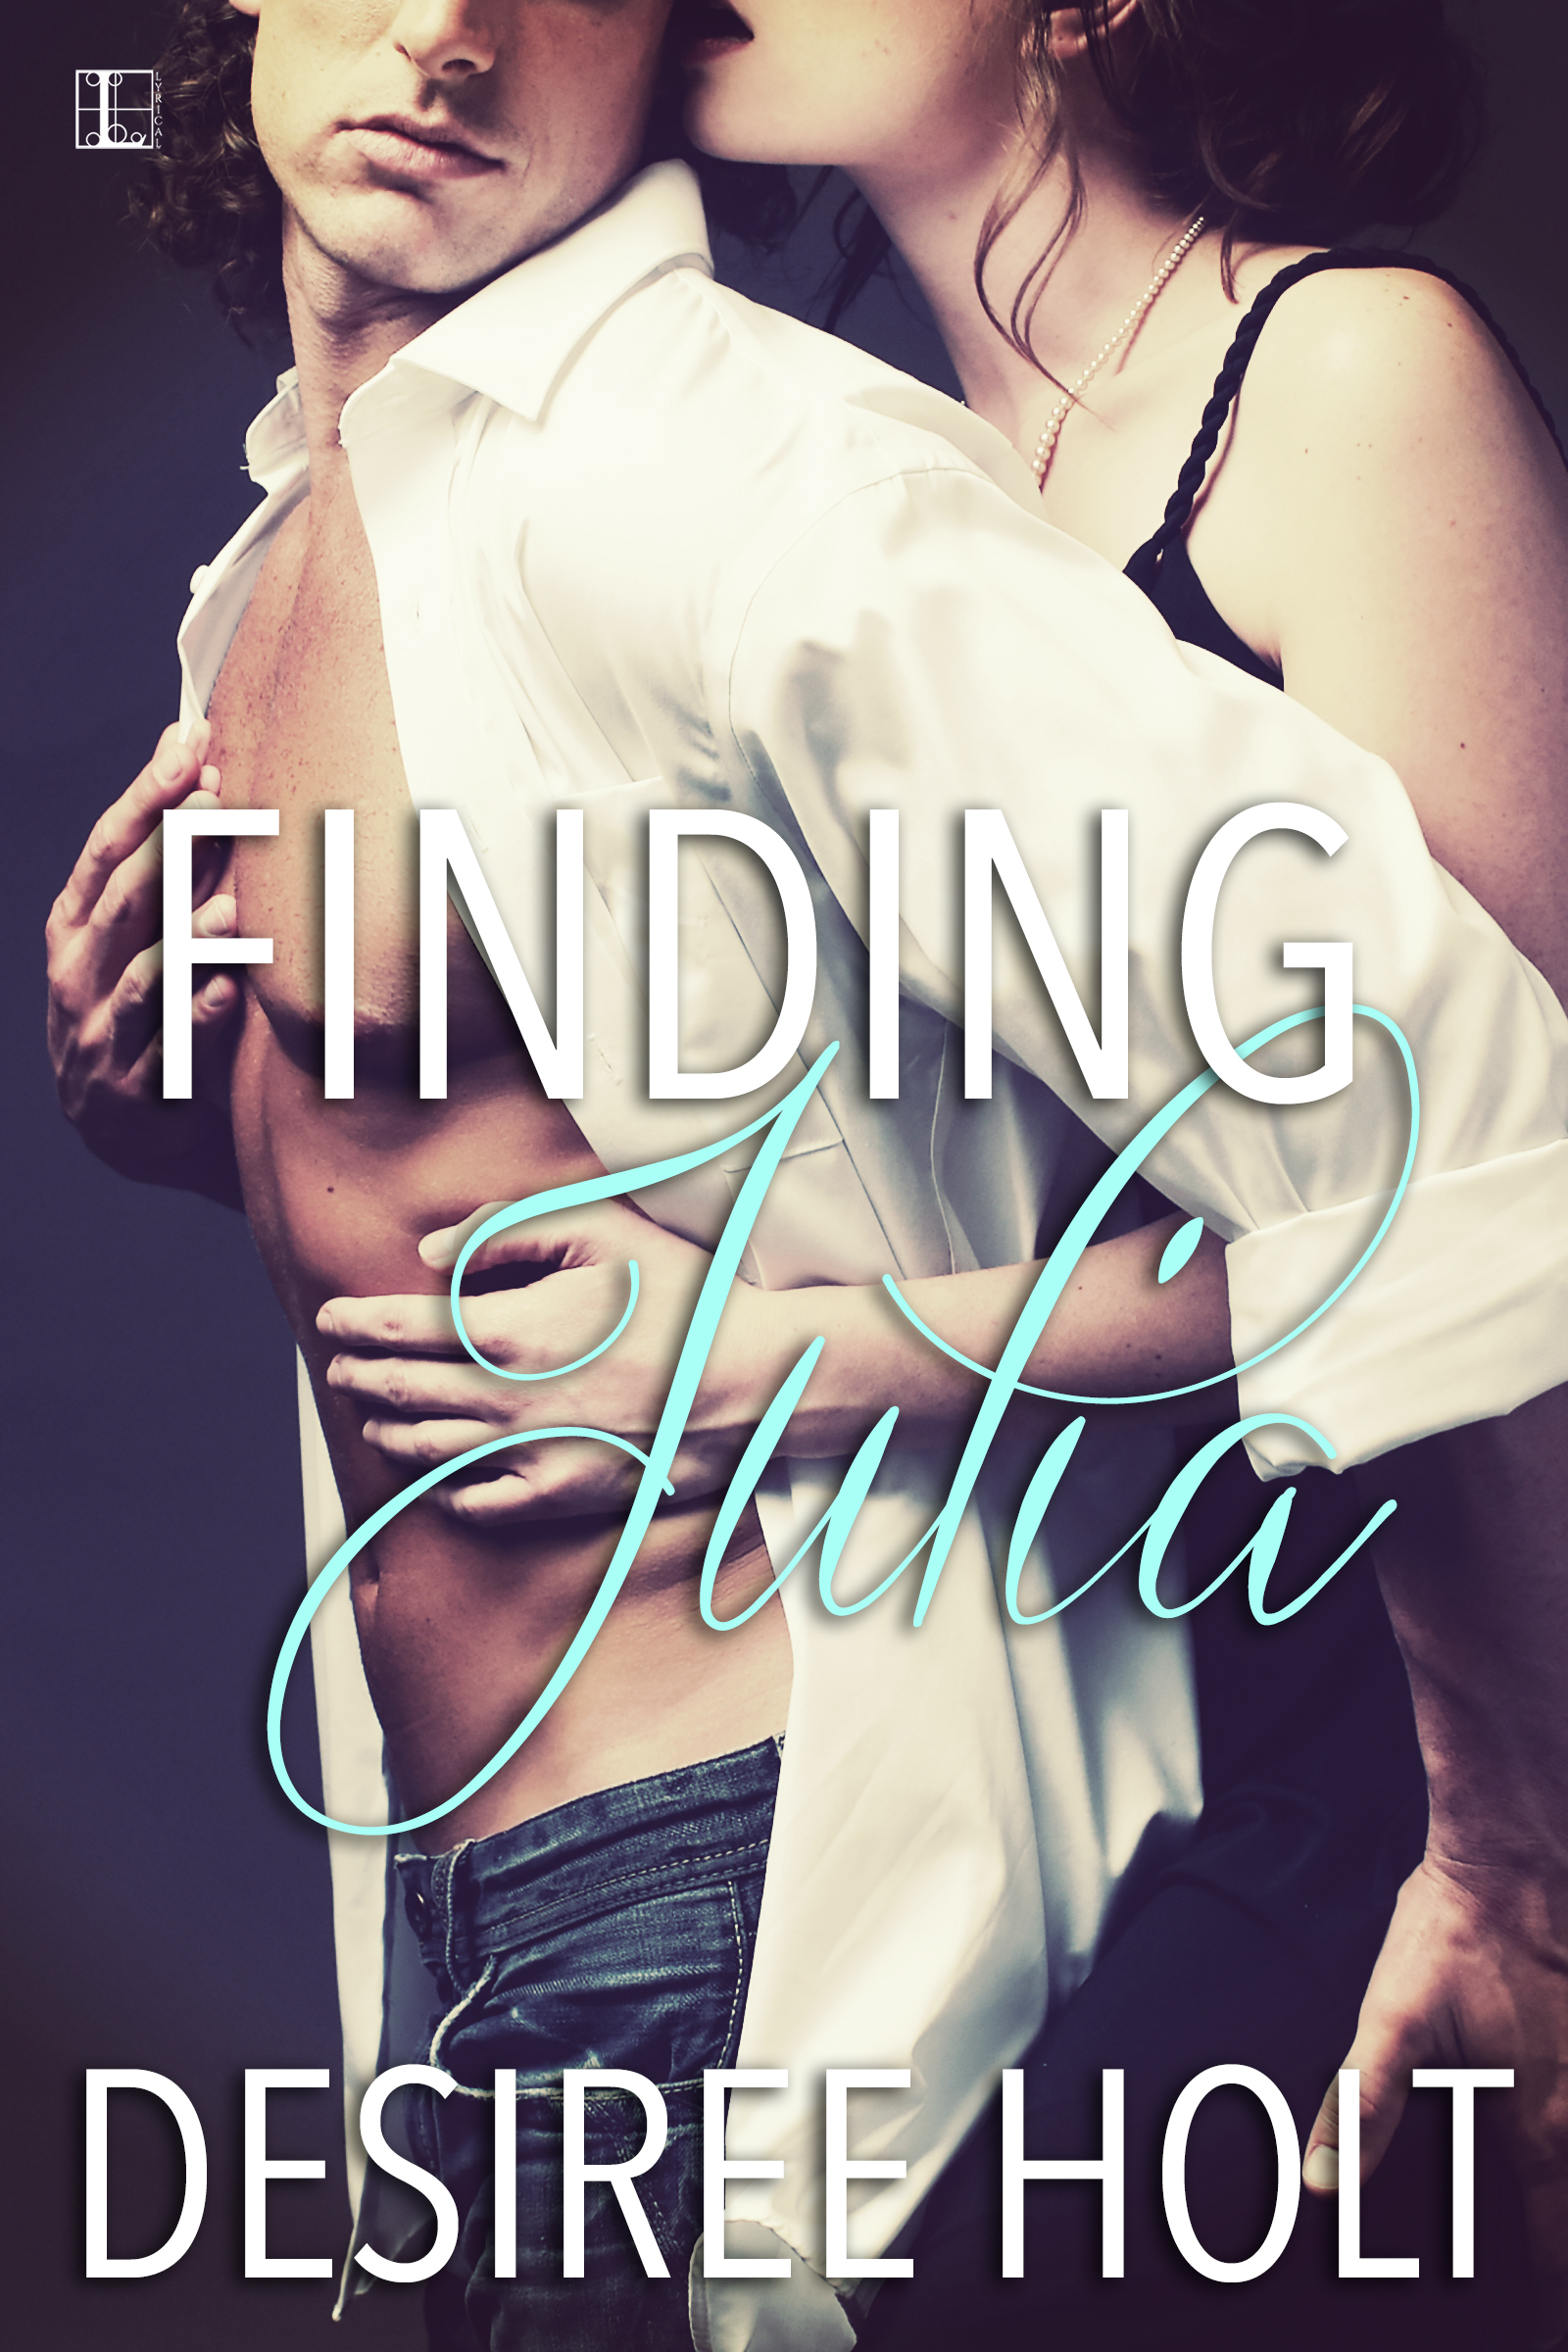 Finding Julia is here at last!